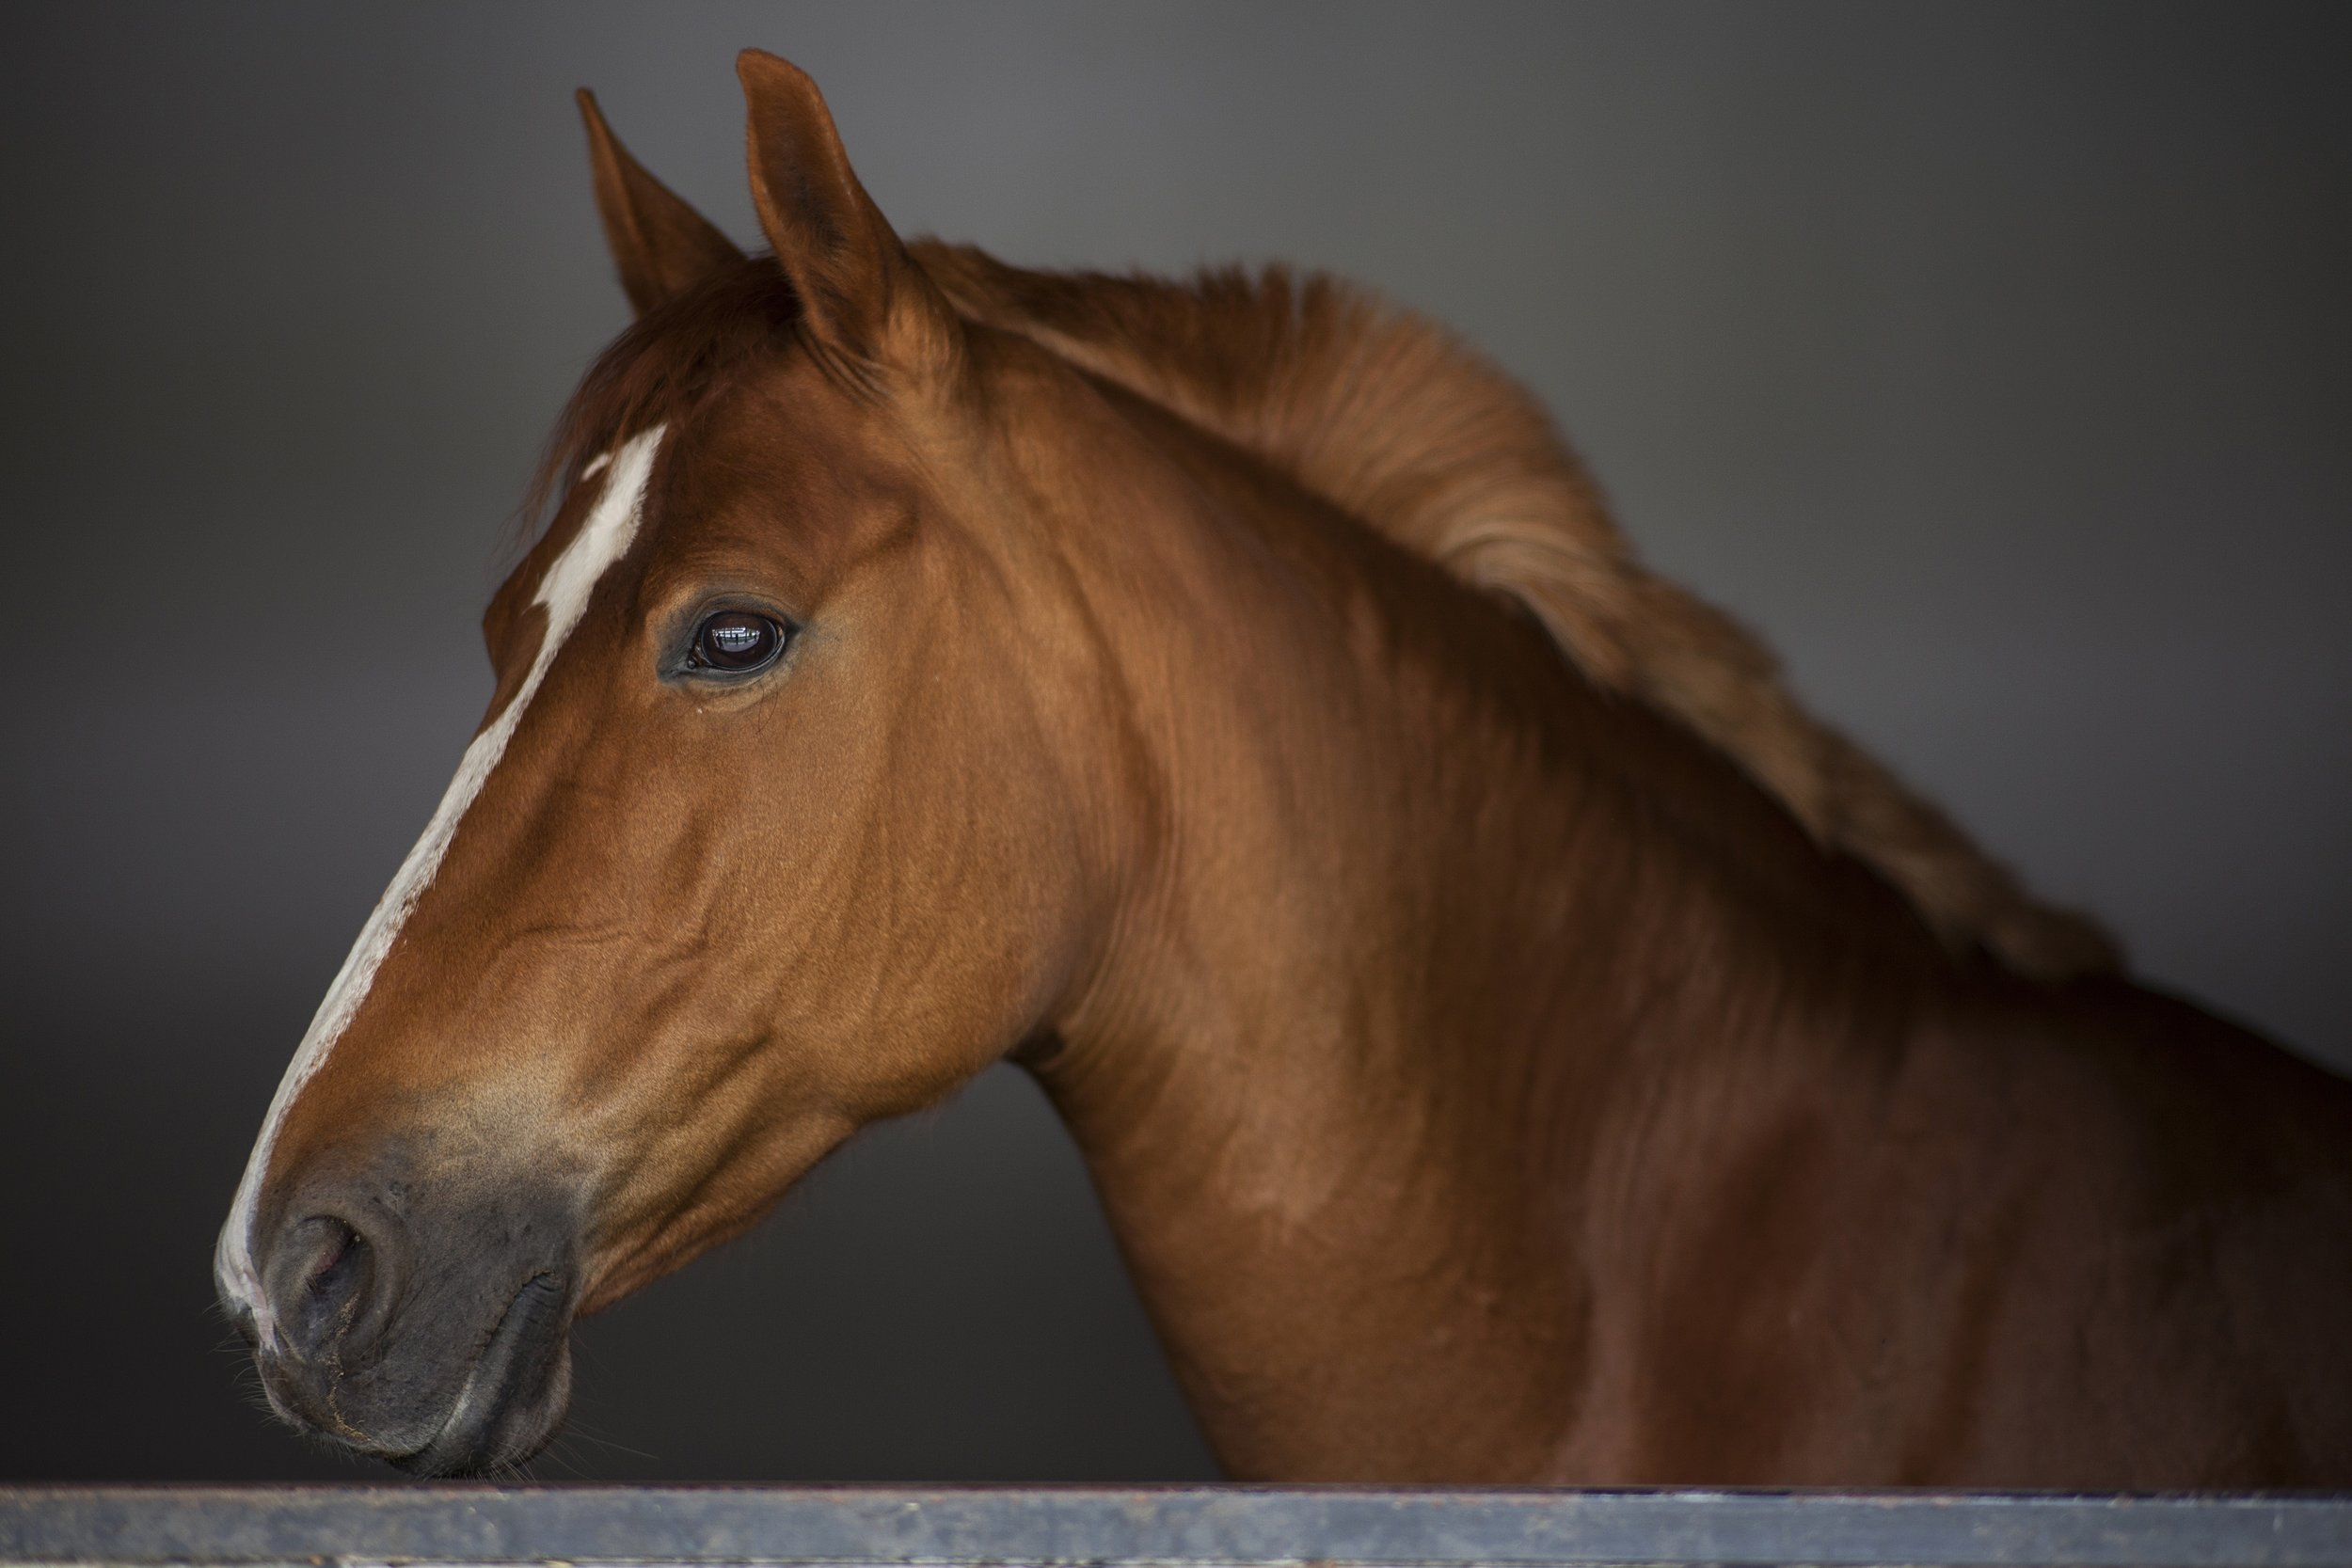 is your horse bomb-proof?